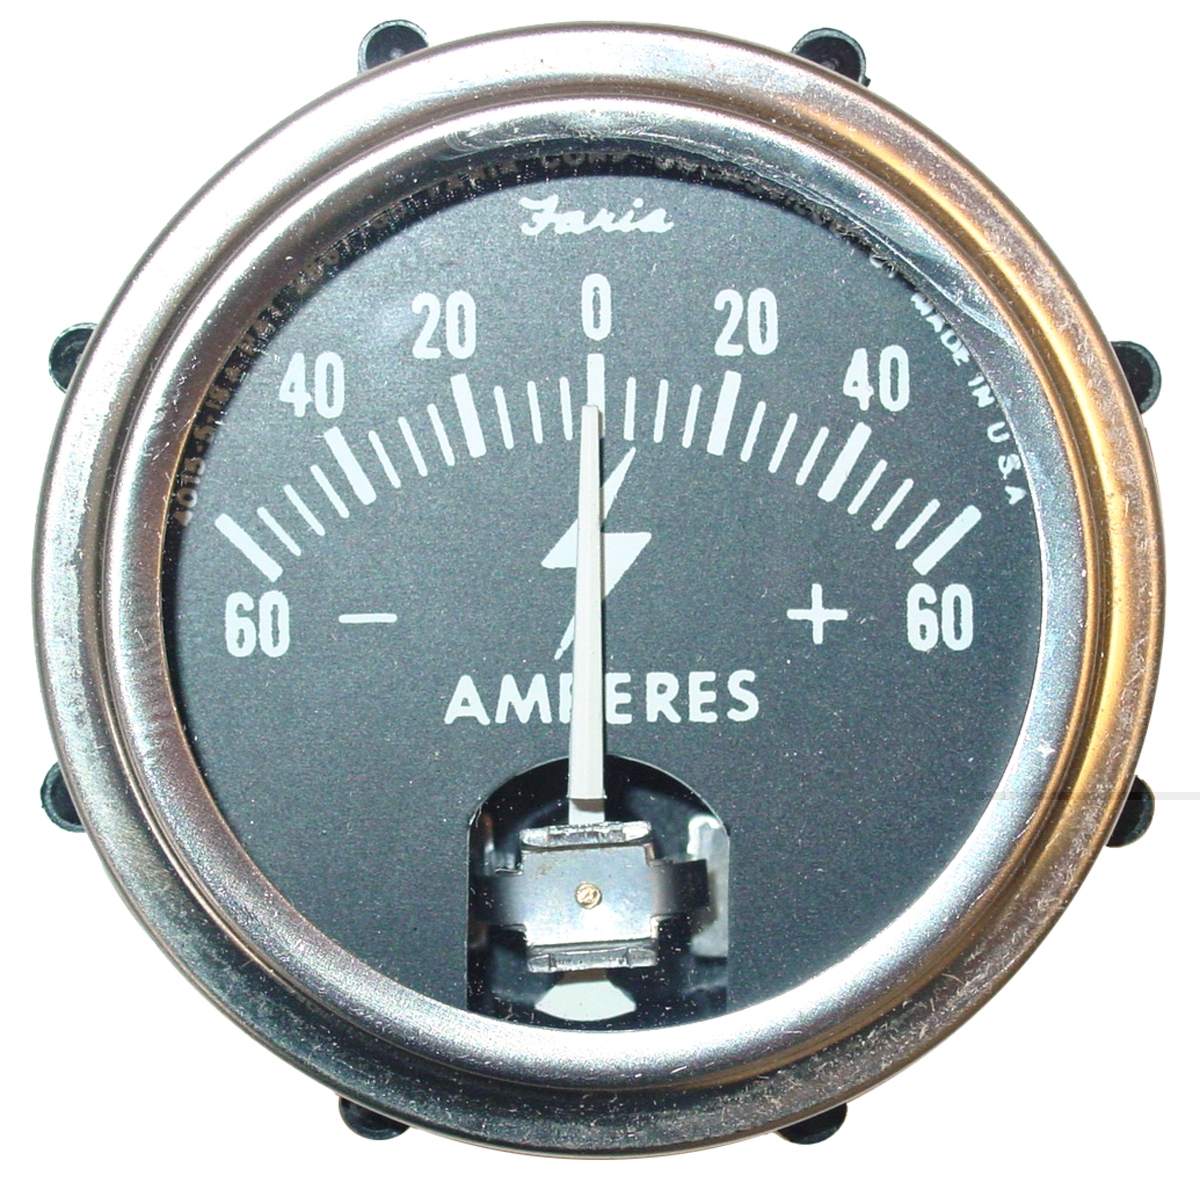 ammeter amp gauge 60 0 60 case ih parts case ih. Black Bedroom Furniture Sets. Home Design Ideas